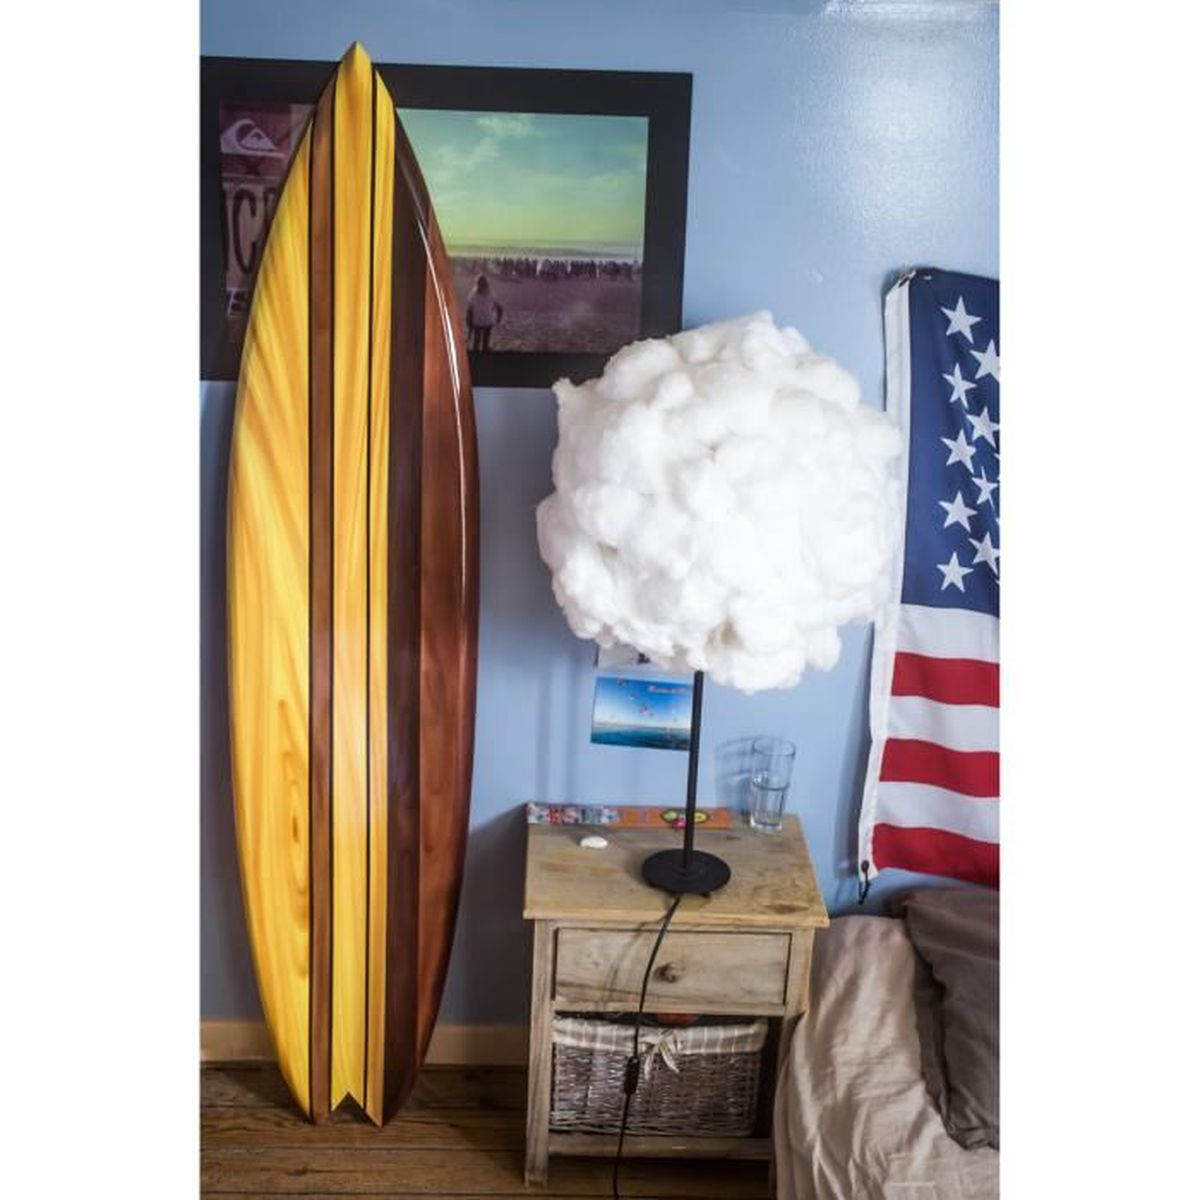 planche de surf vintage en bois 1m50 achat vente objet d coration murale cdiscount. Black Bedroom Furniture Sets. Home Design Ideas